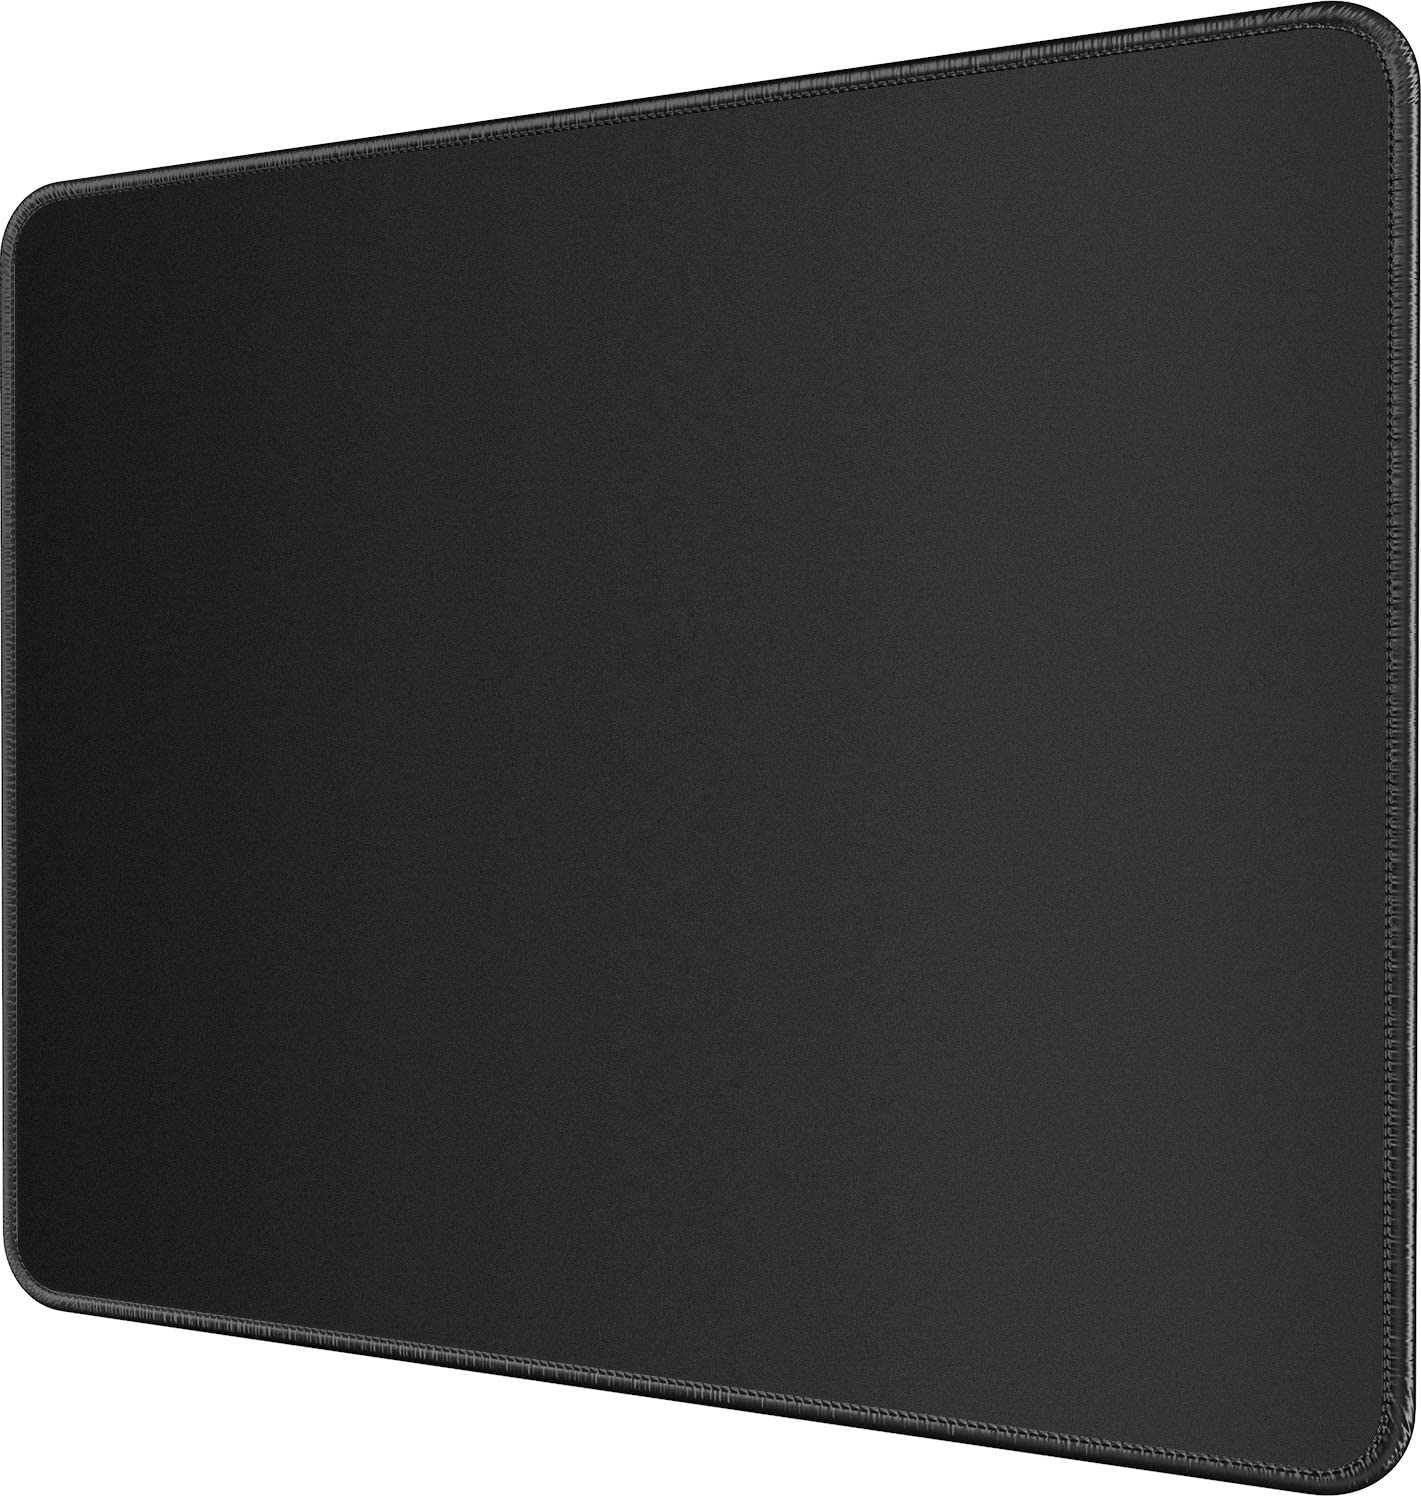 MROCO Large Gaming Mouse Pad Pack with Stitched Edges, Non-Slip Rubber Base, Premium-Textured, Waterproof Mousepad Bulk Mouse Mat Mouse Pads for Gamer, Computer & PC, 12.6 x 10.8 x 0.12 inches, Black